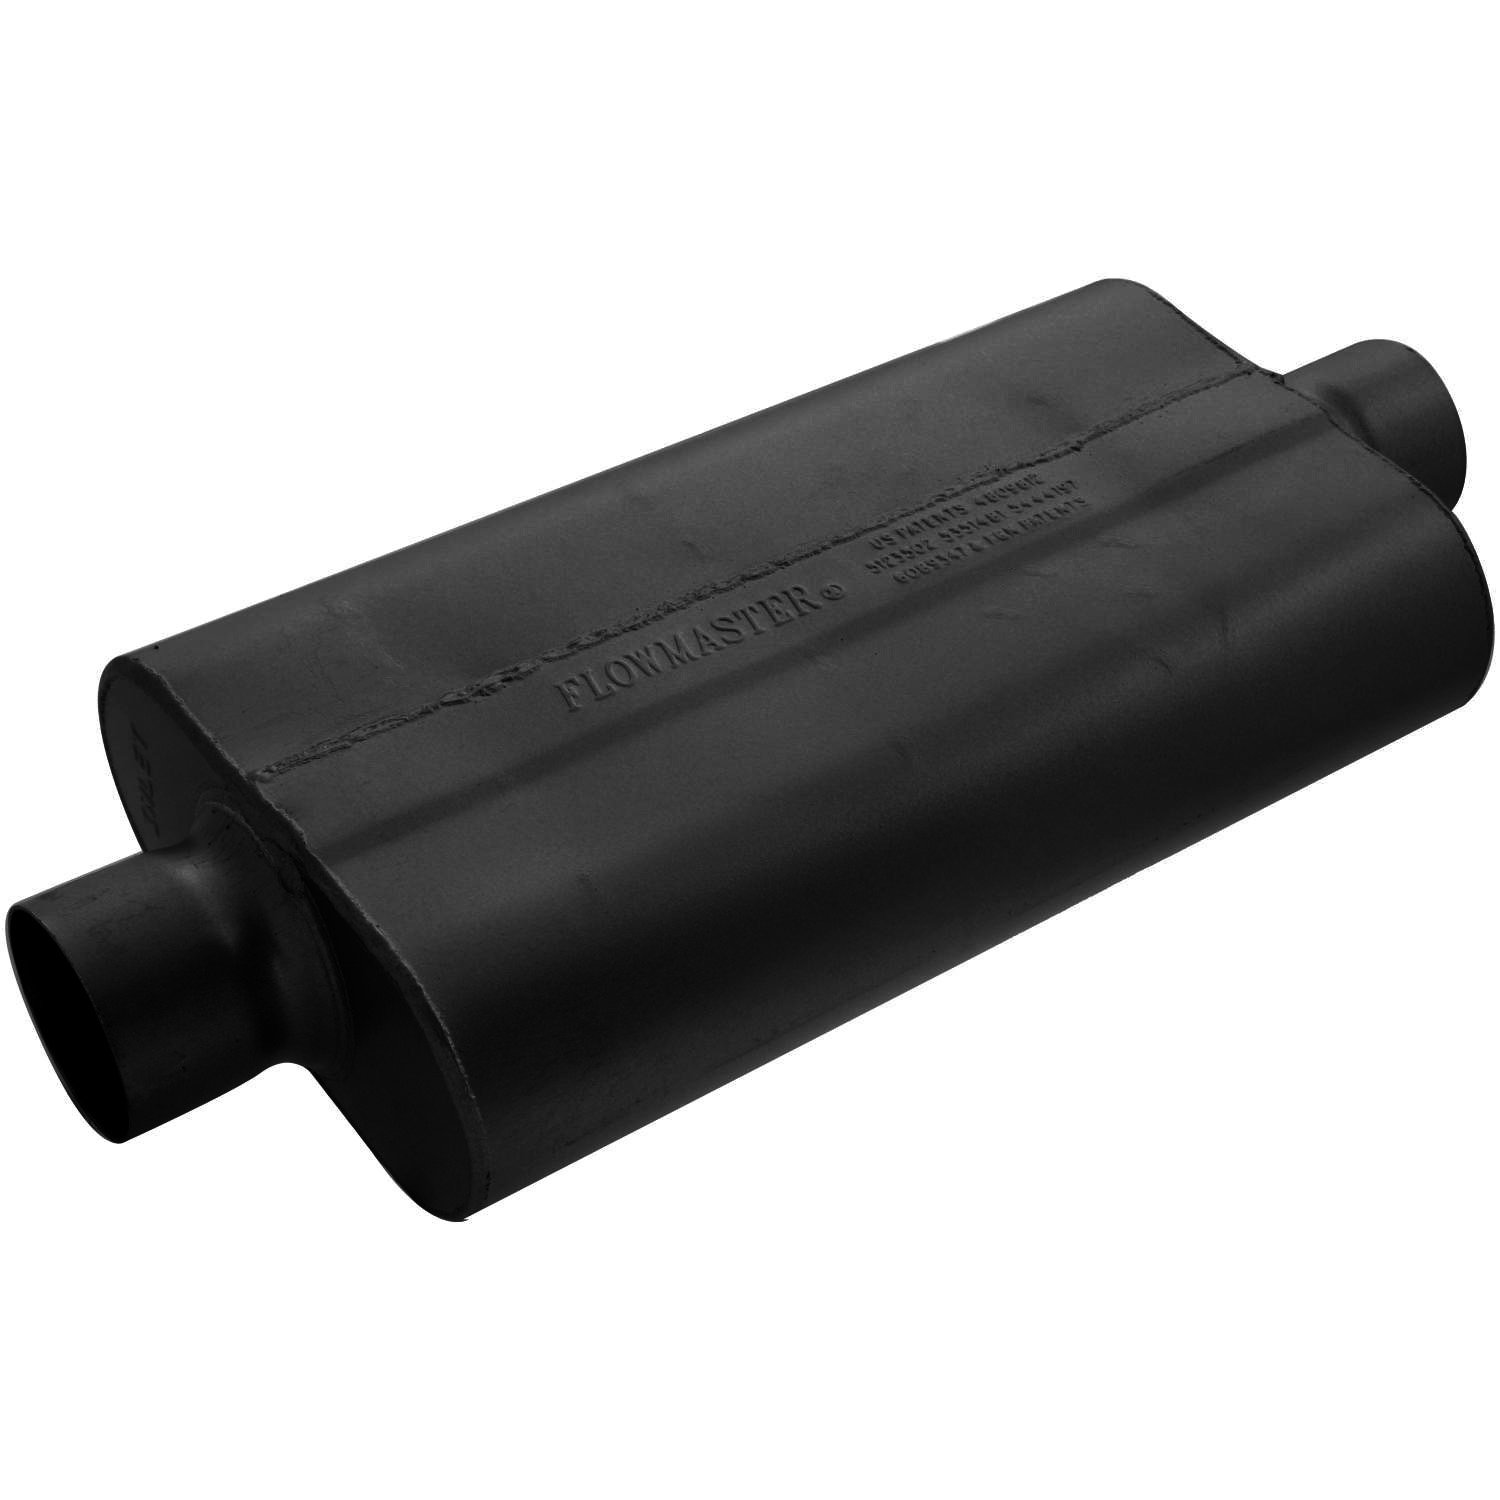 Flowmaster 943050 50 Delta Flow Muffler - 3.00 Center IN / 3.00 Center OUT - Moderate Sound by Flowmaster (Image #1)